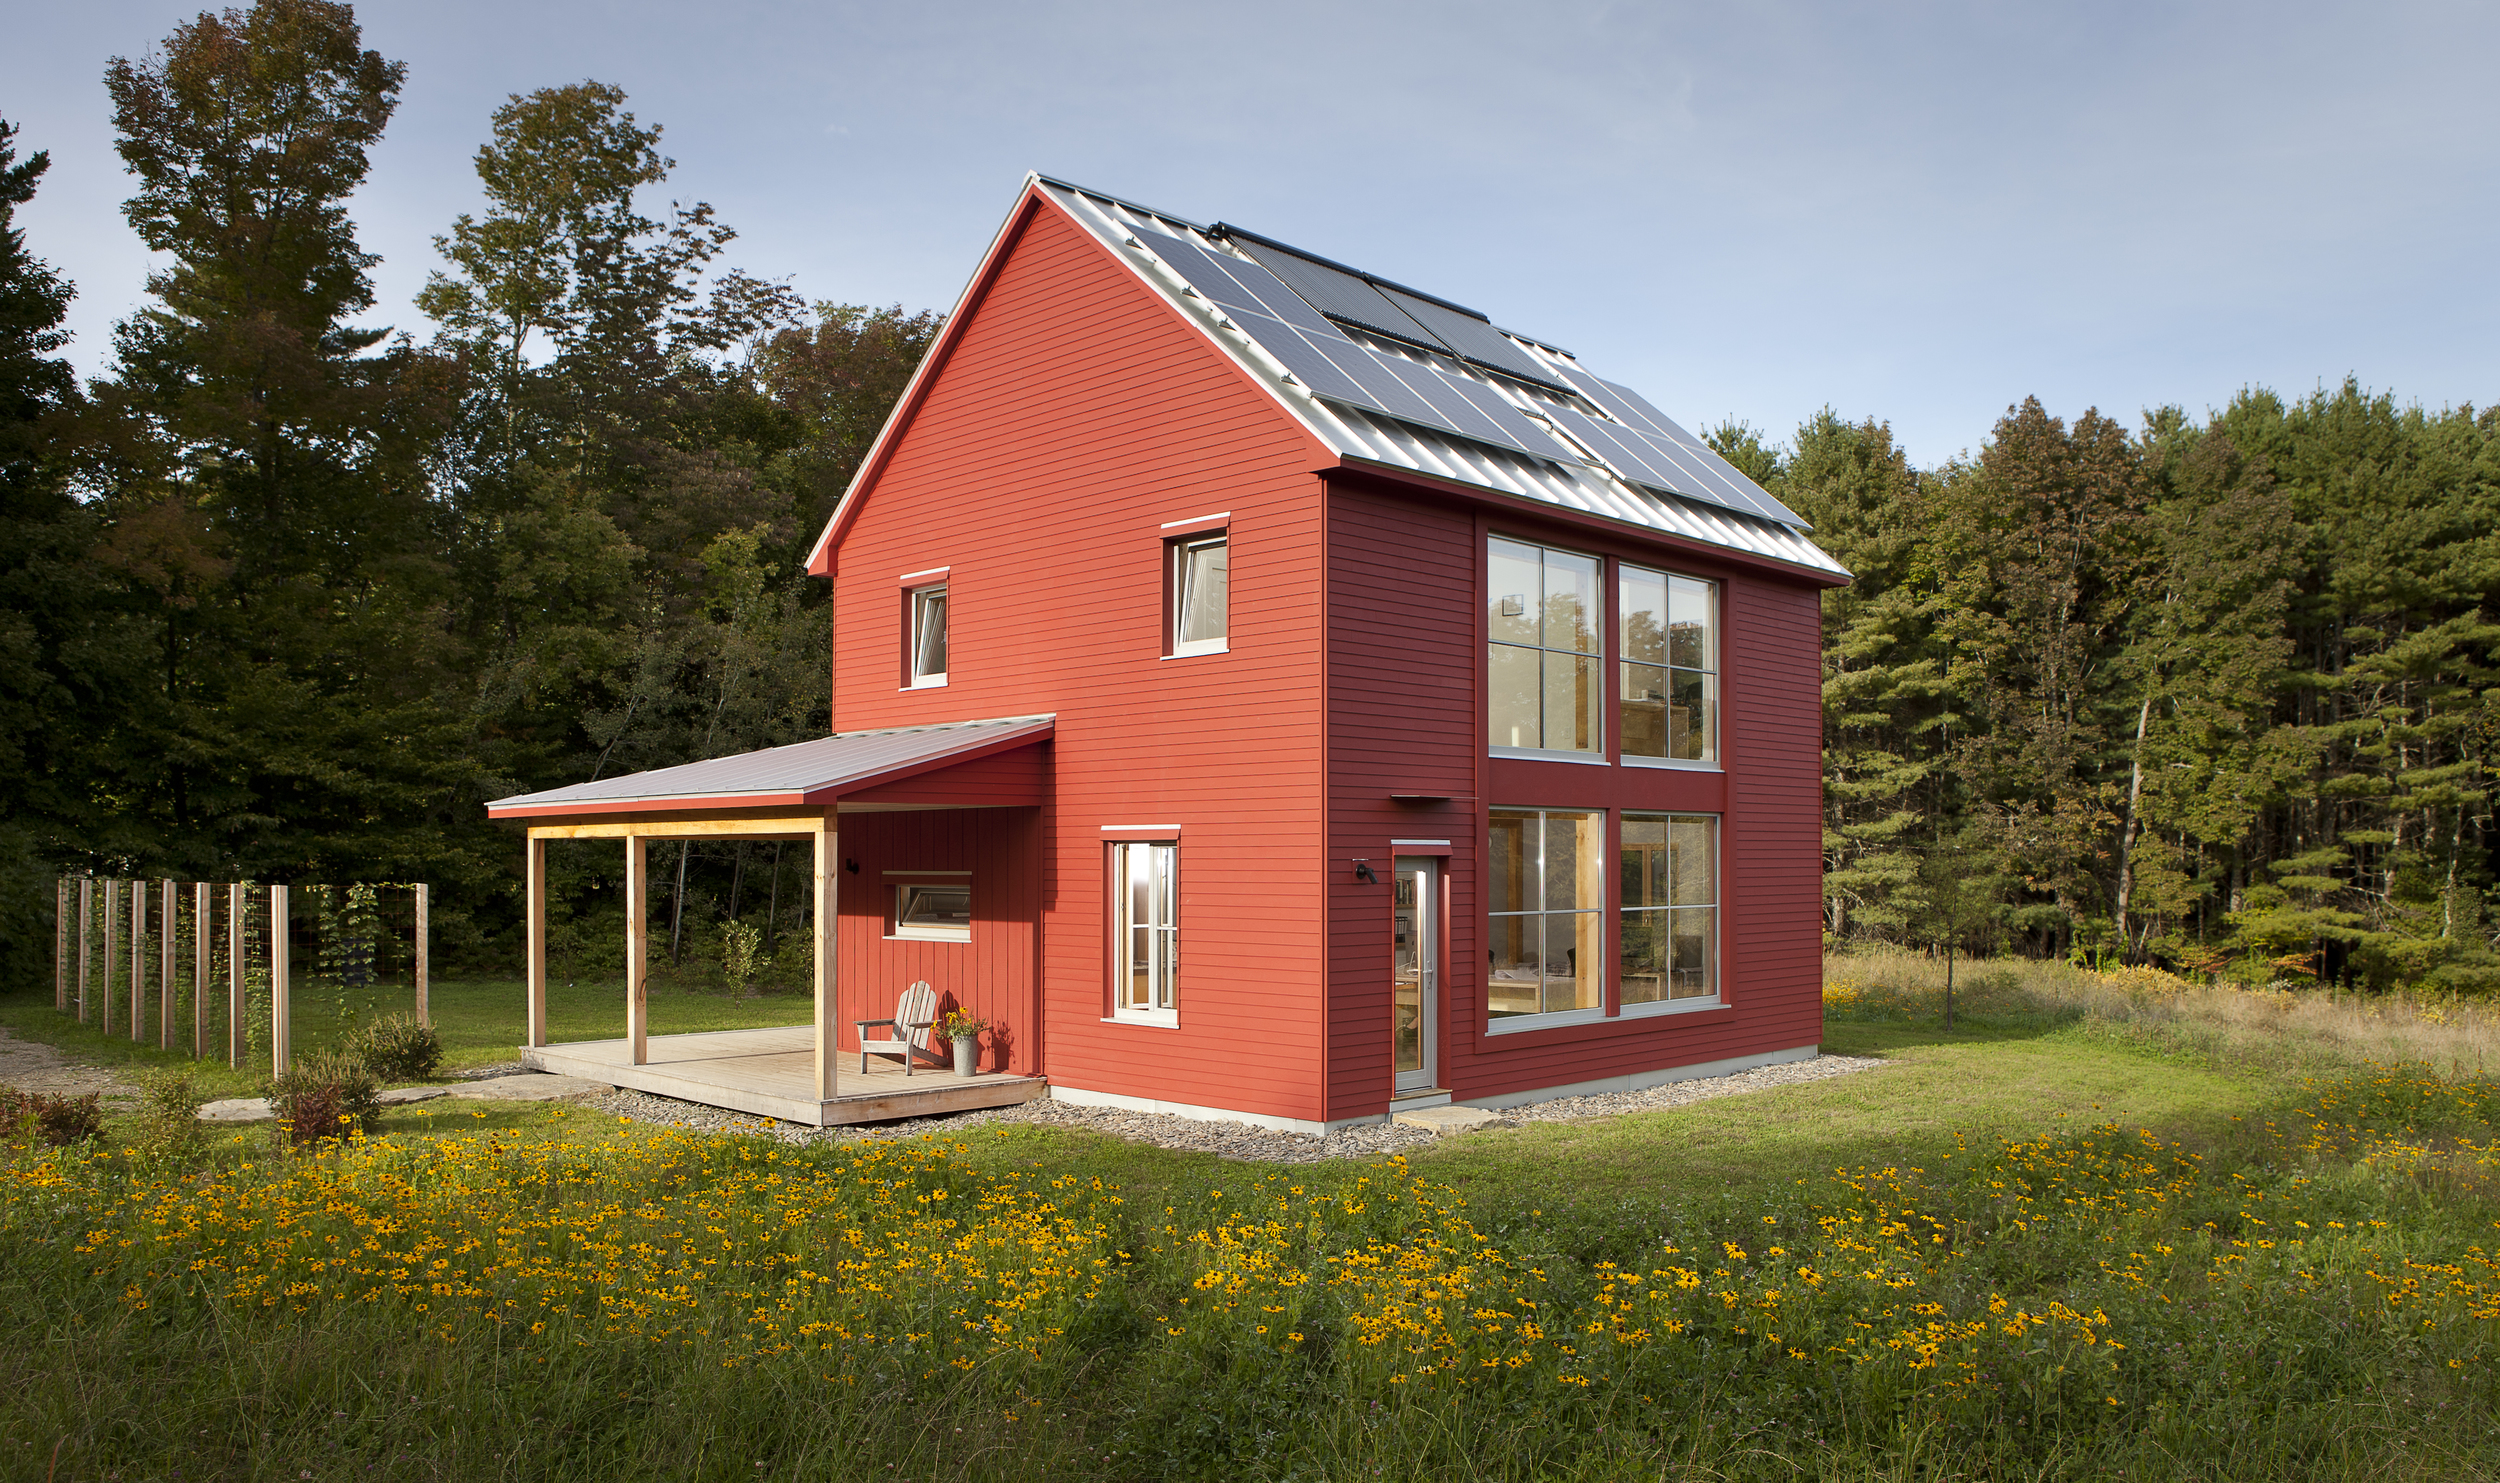 The 39 passive house 39 path to extreme energy efficiency for Passive solar prefab homes